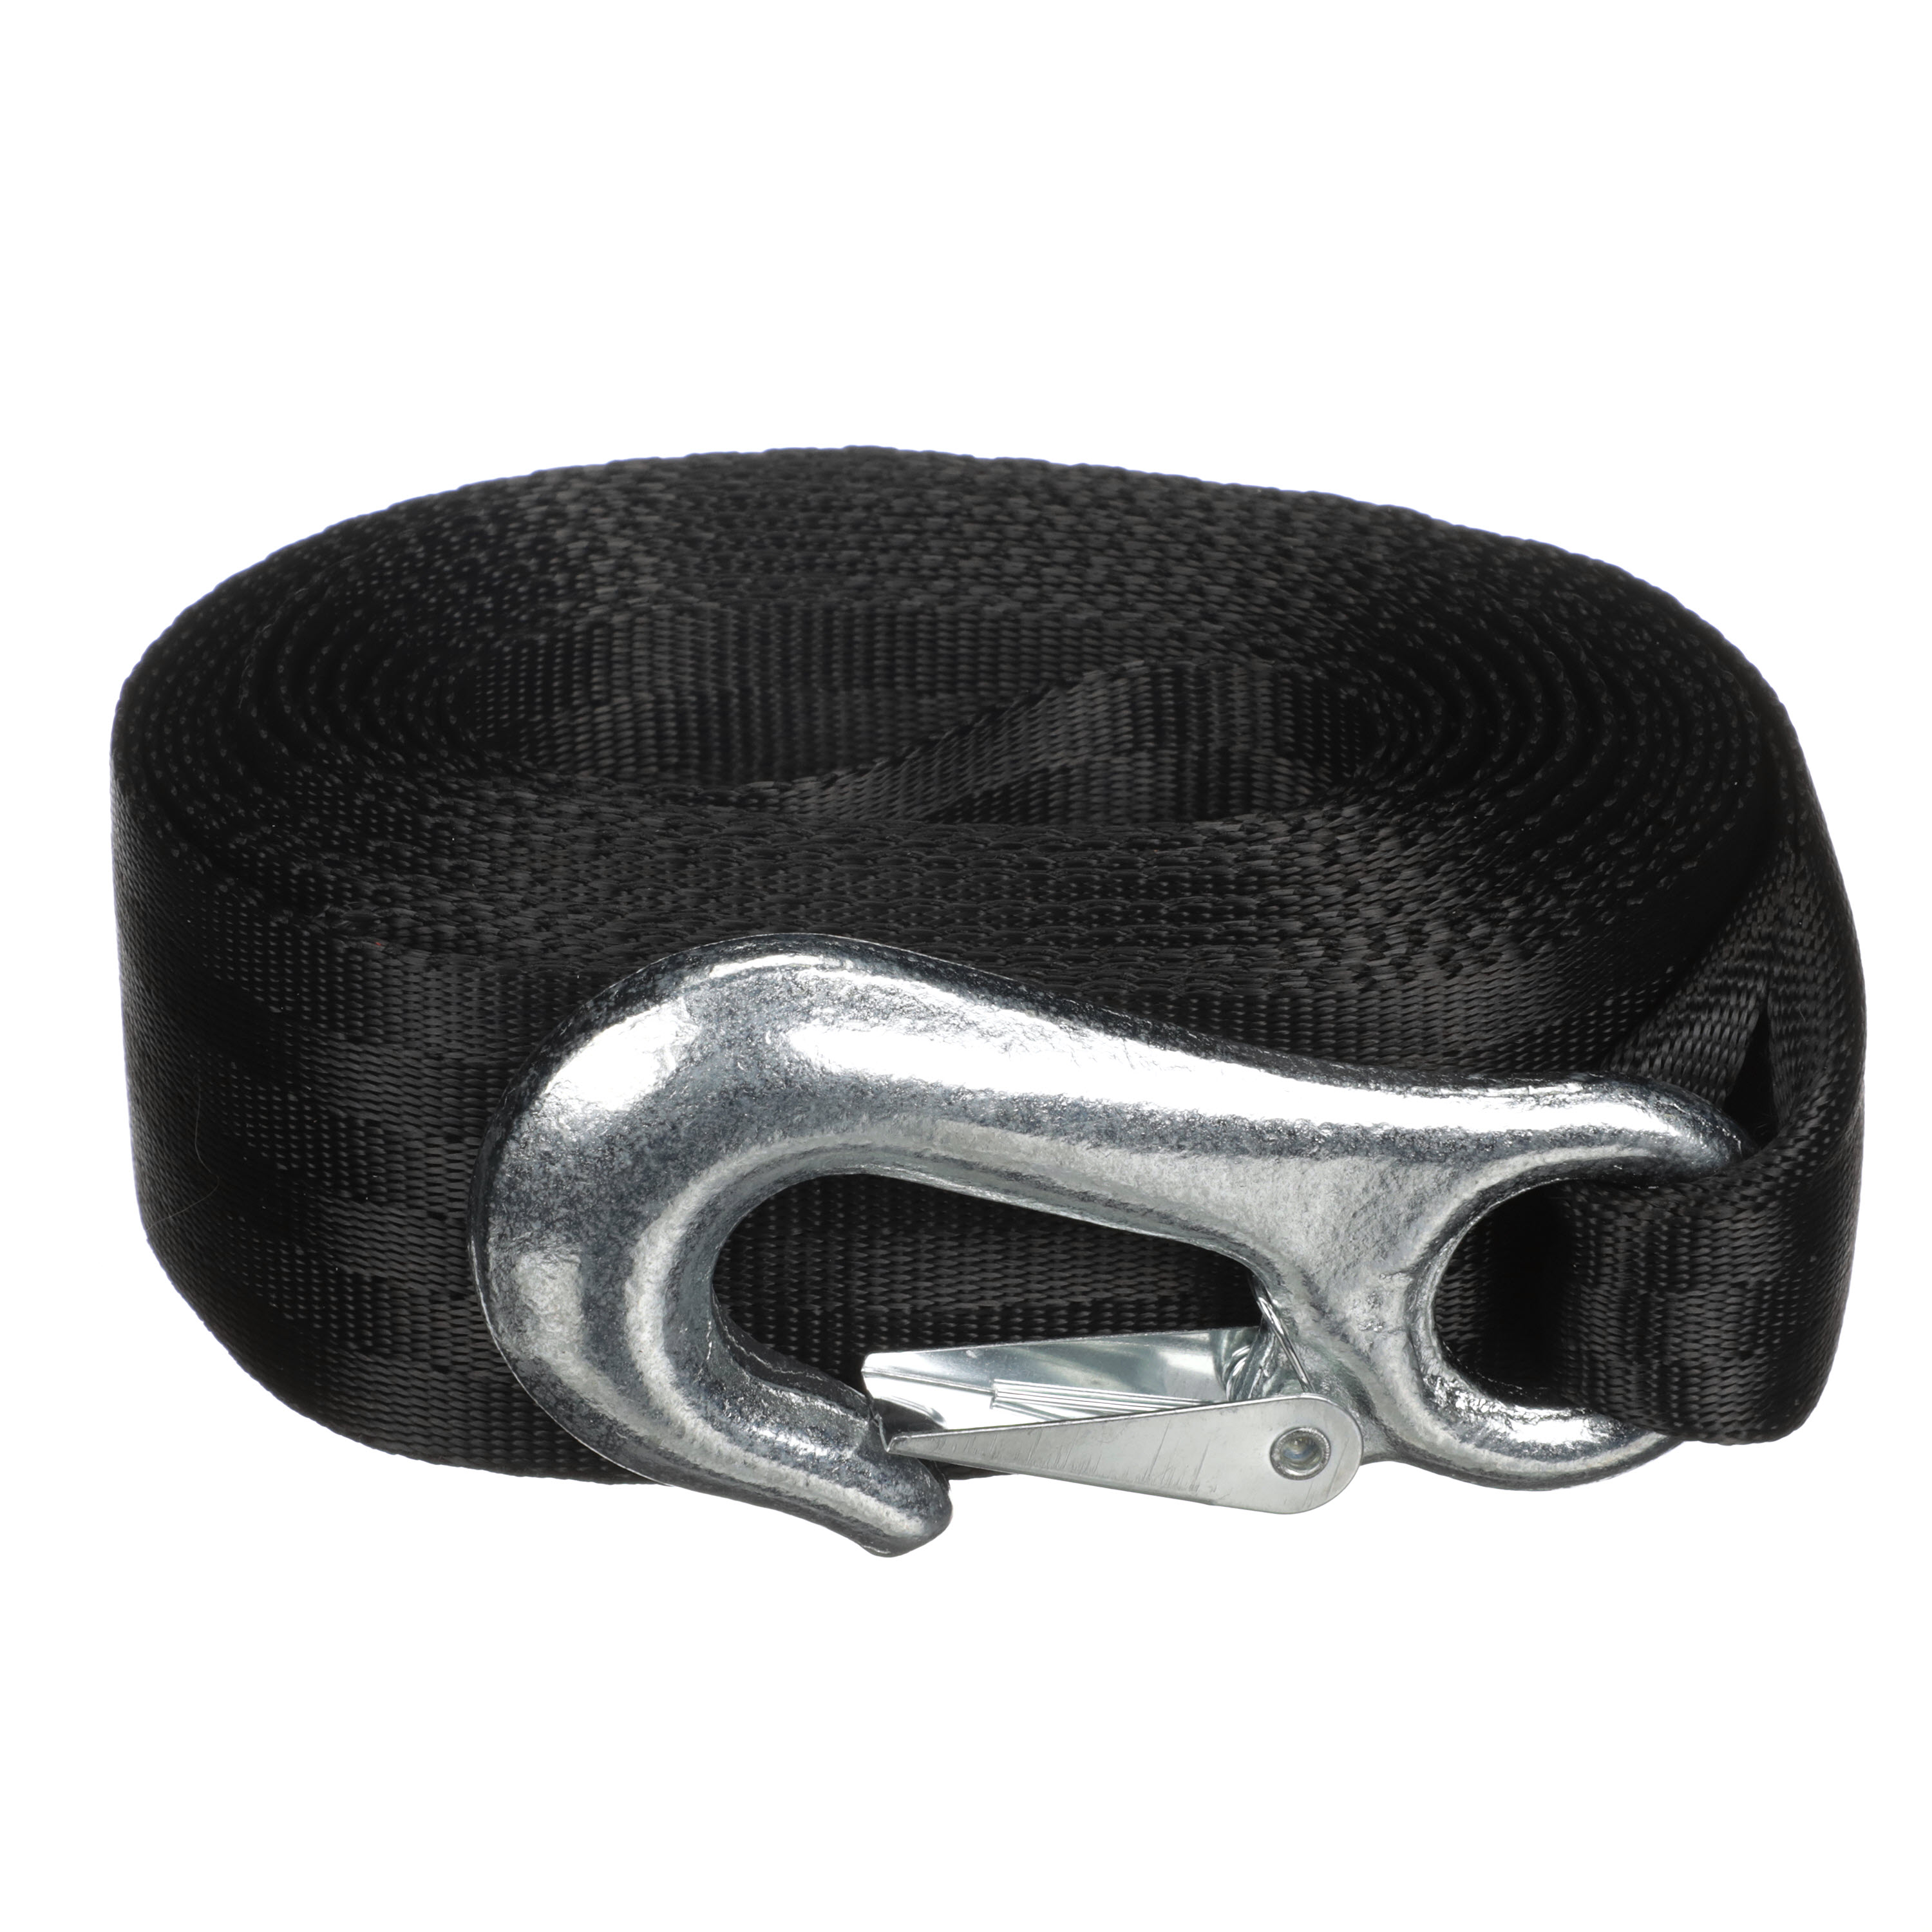 2-Inch x 25-Feet BoatBuckle Winch Strap with Loop End